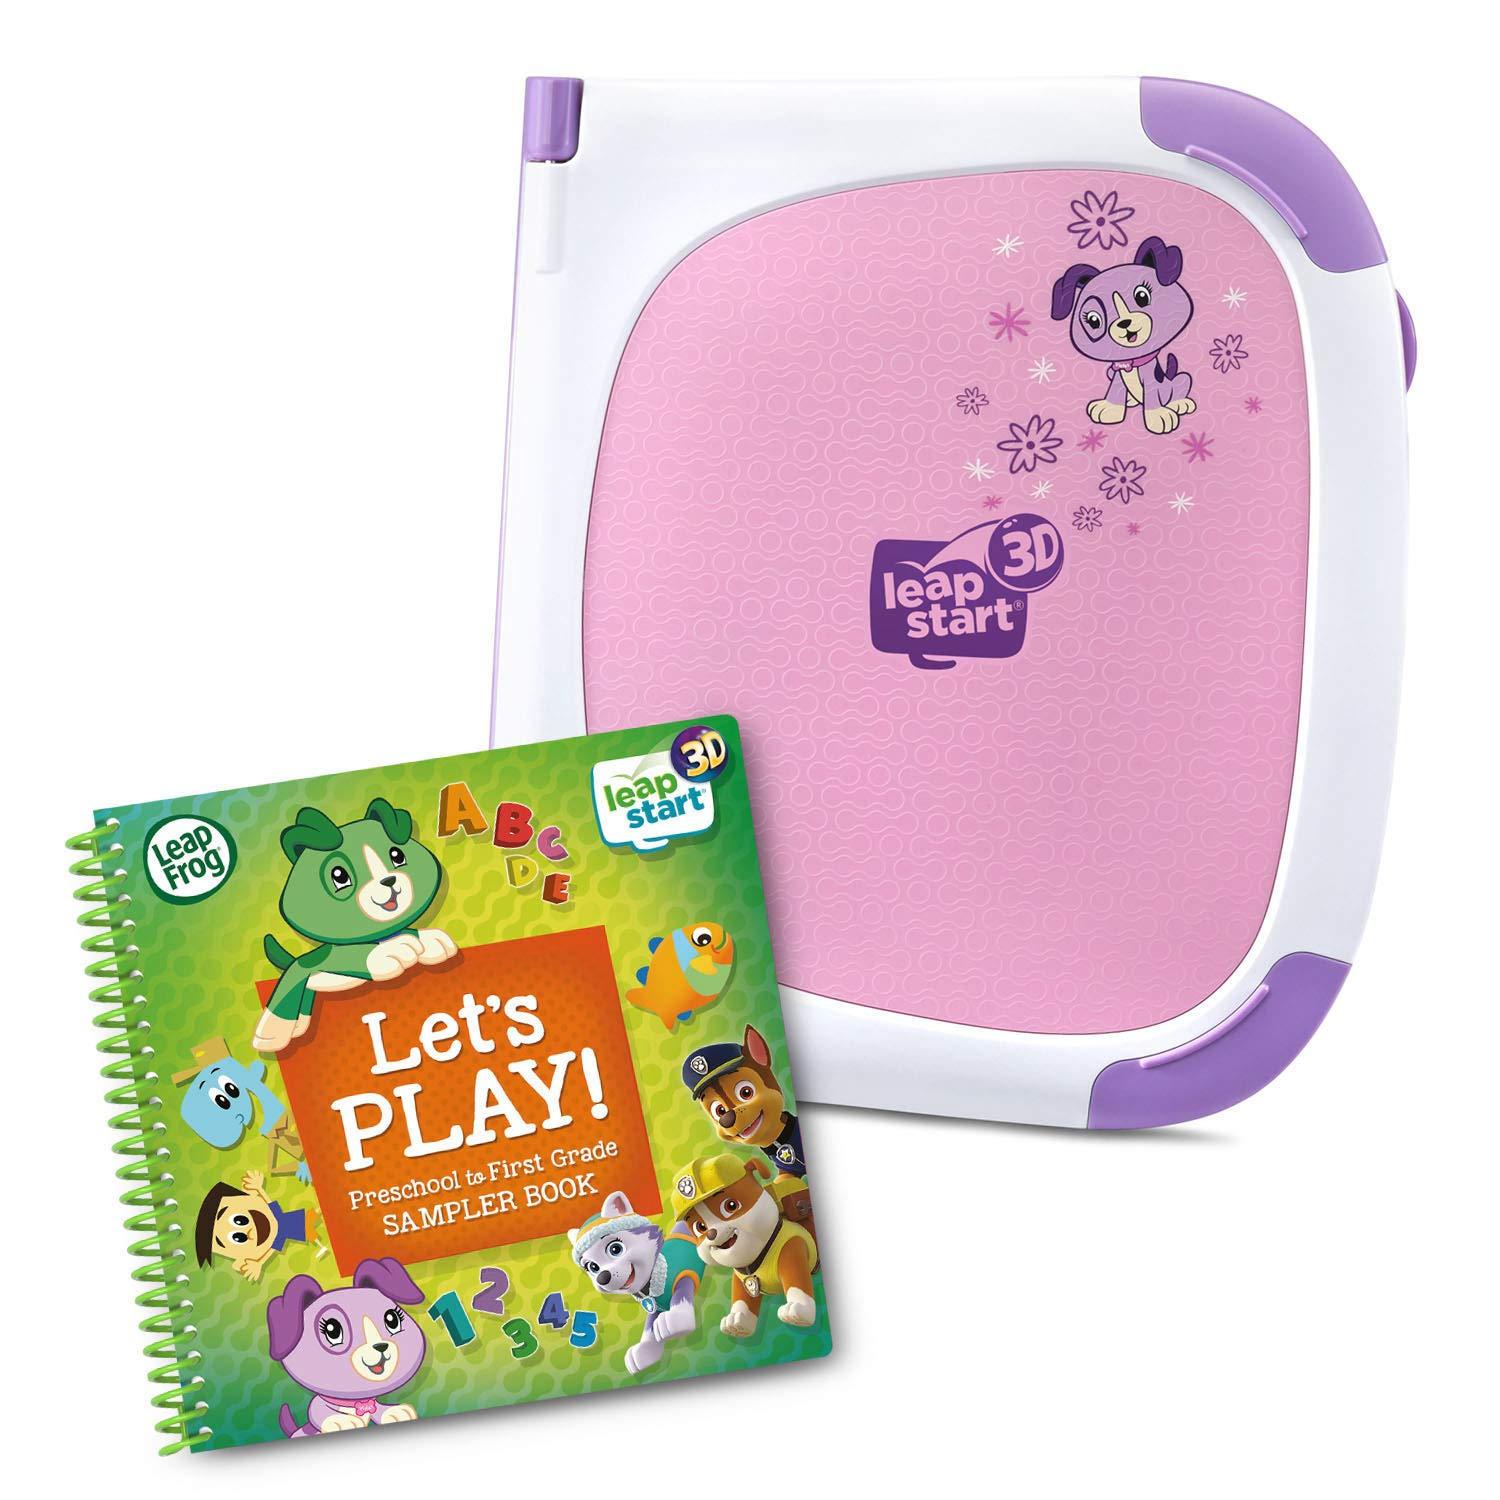 LeapFrog LeapStart 3D Interactive Learning System Amazon Exclusive, Violet by LeapFrog (Image #4)